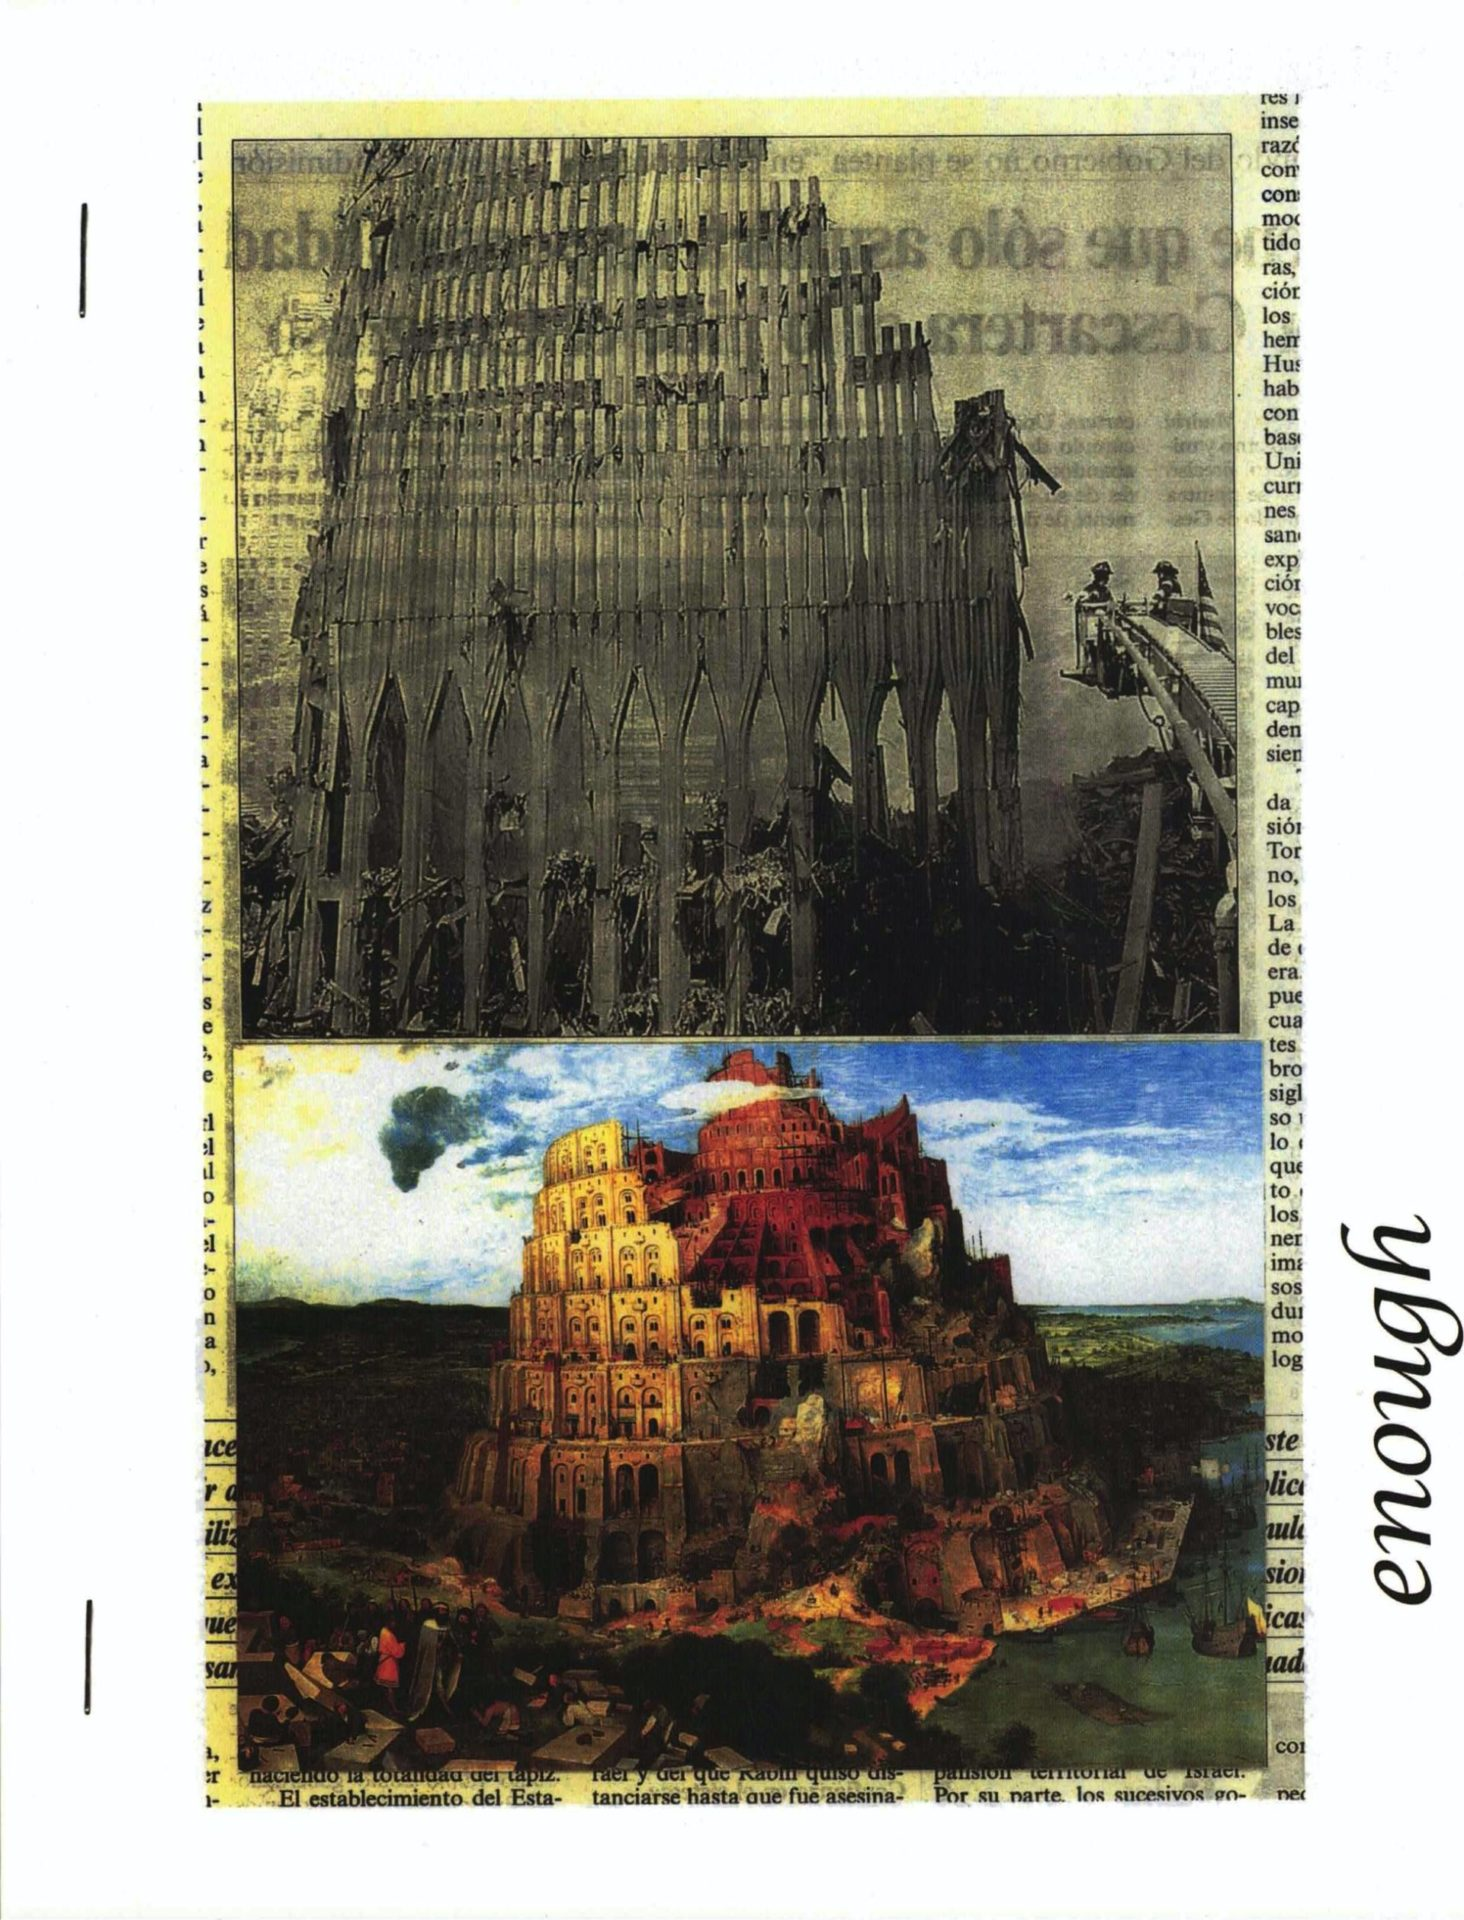 cover of enough; top half is b&w image of a coliseum-type building under construction, bottom half is color image of fully built coliseum-type structure